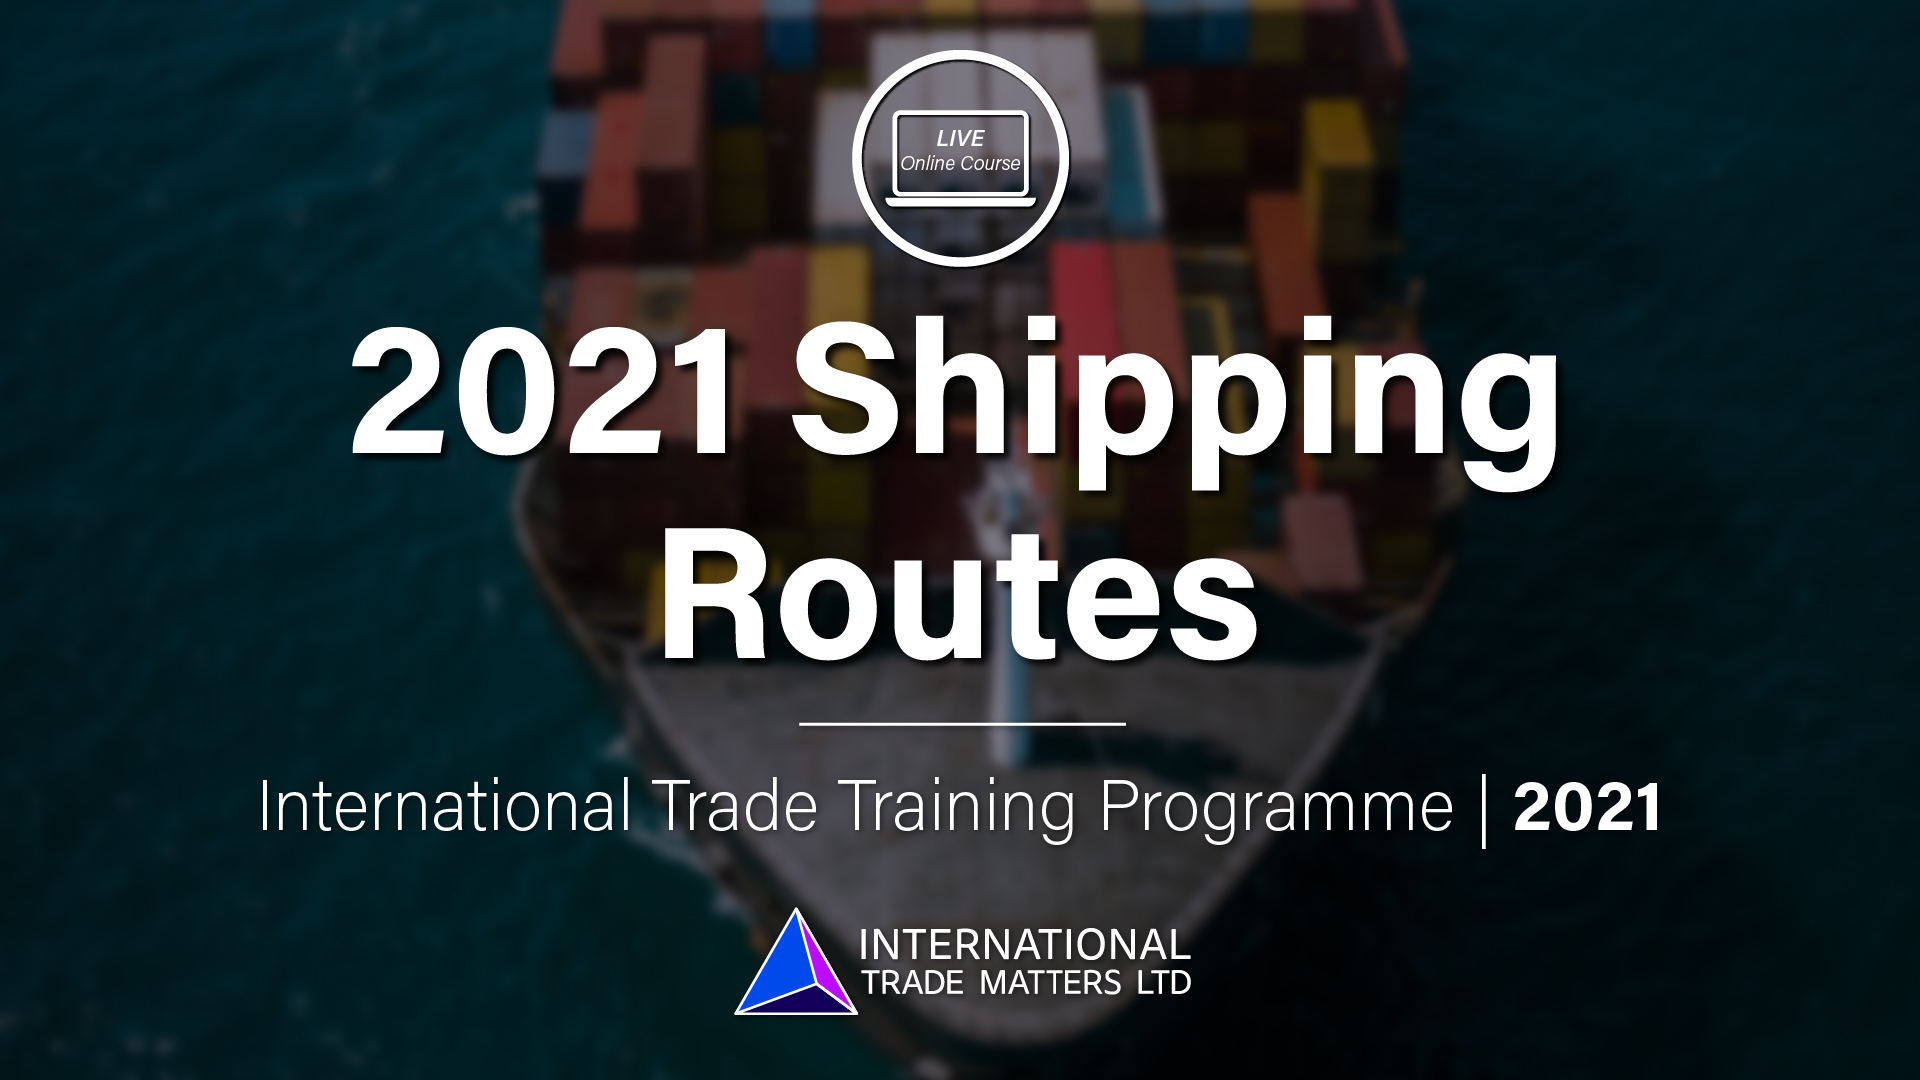 2021 Shipping Routes – An Online Course